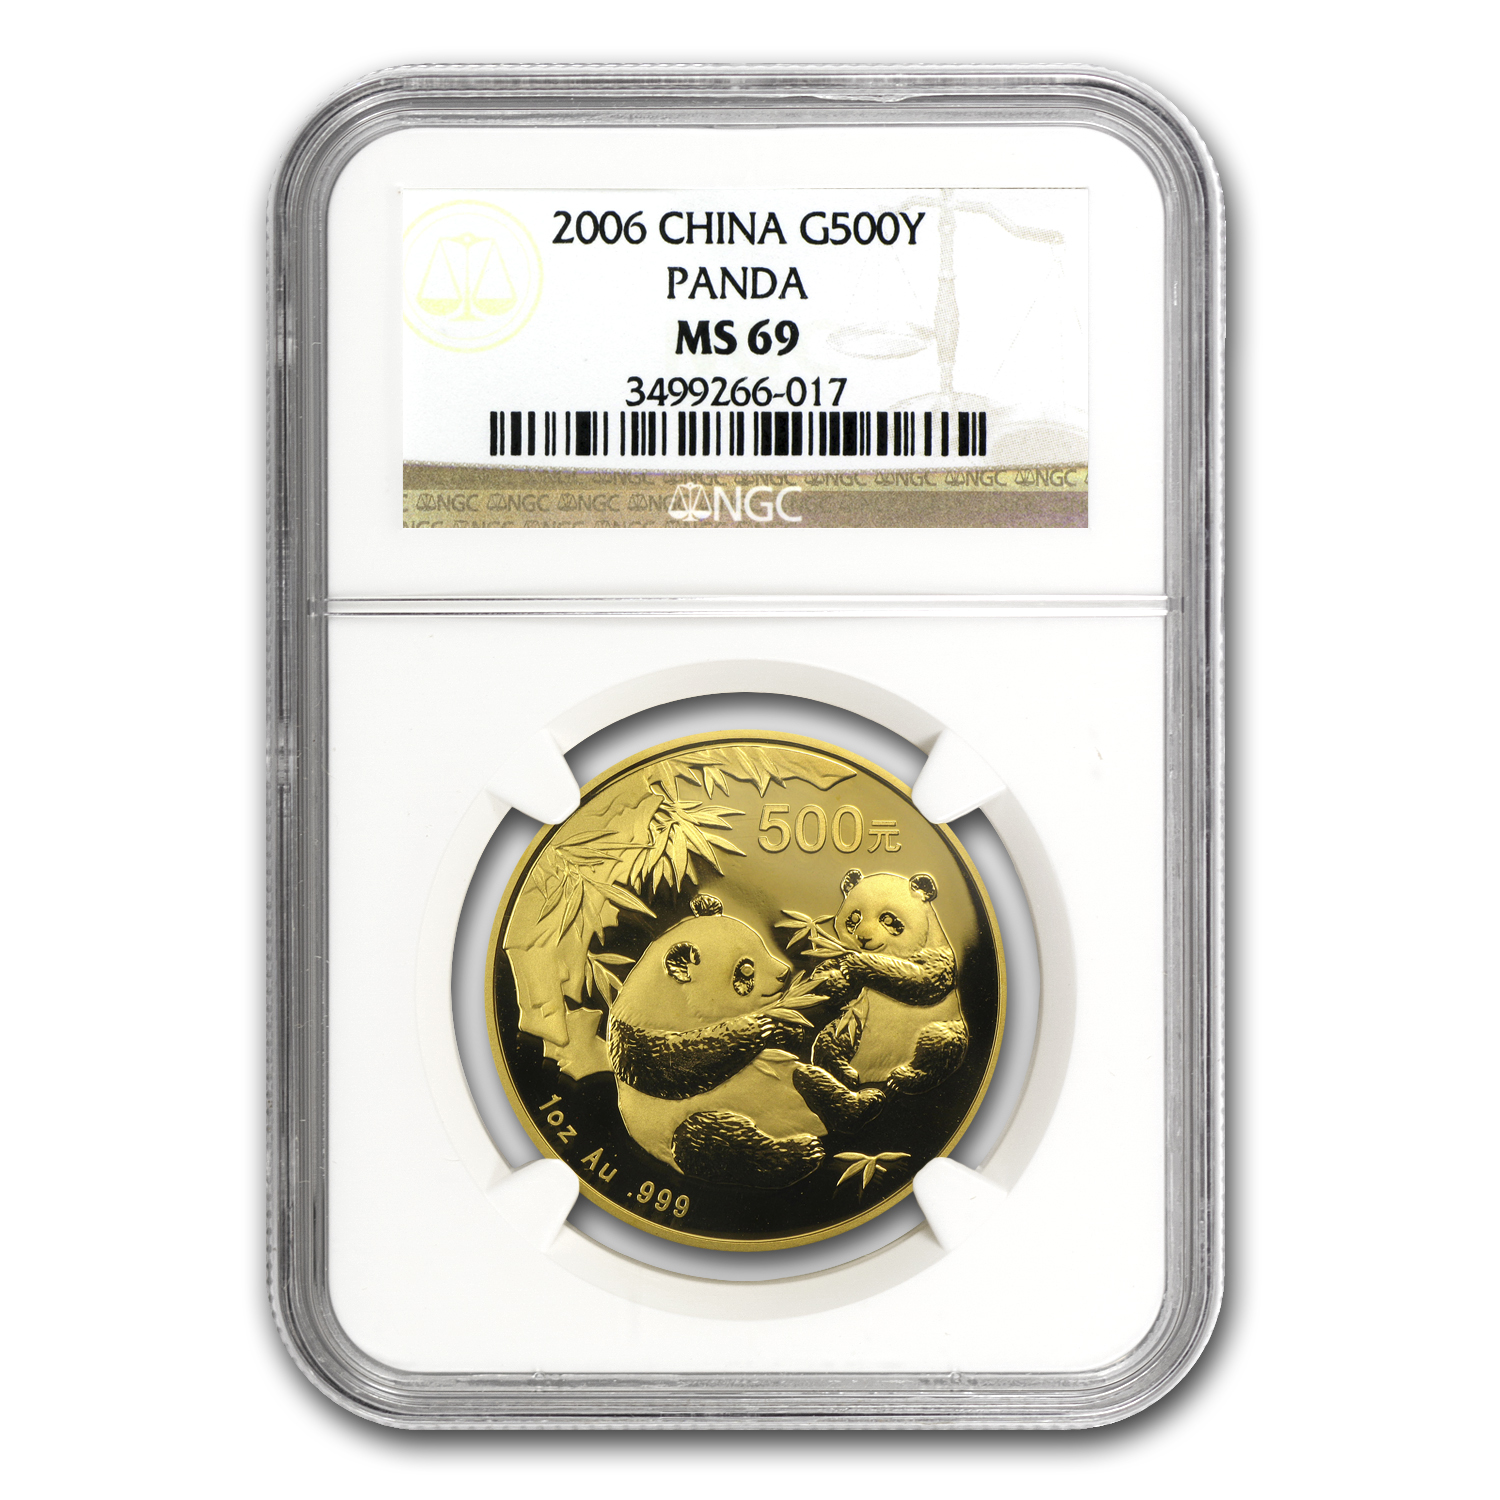 2006 China 1 oz Gold Panda MS-69 NGC